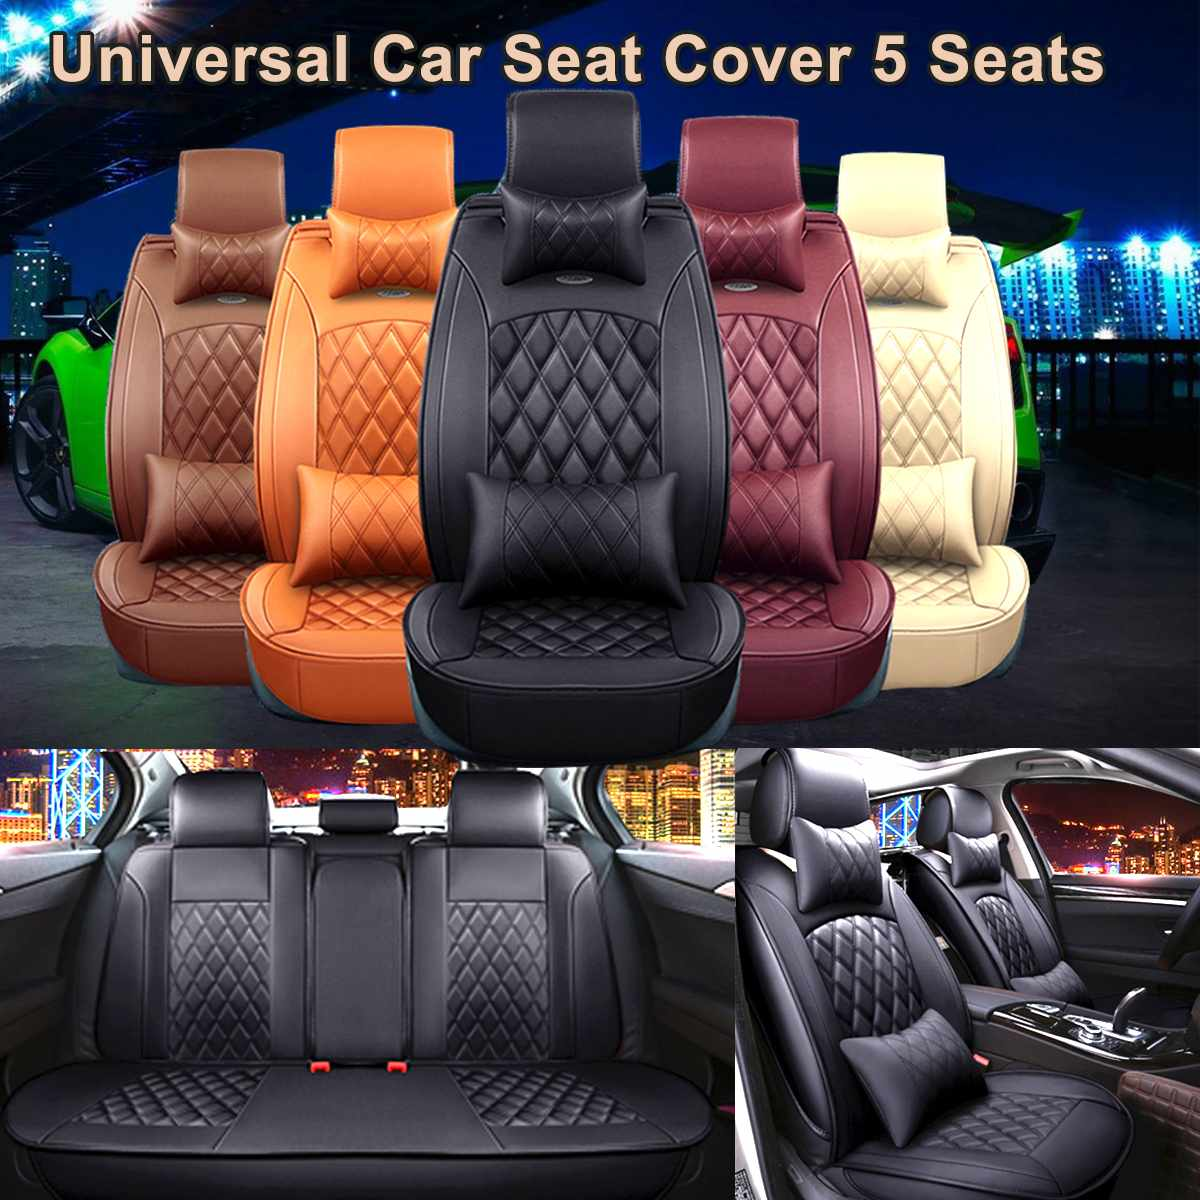 5 Seater Universal Car Seat Cover PU Leather Full Front + Rear Cushion Covers Waterproof For BMW/VW/Honda/Audi/Ford/Renault